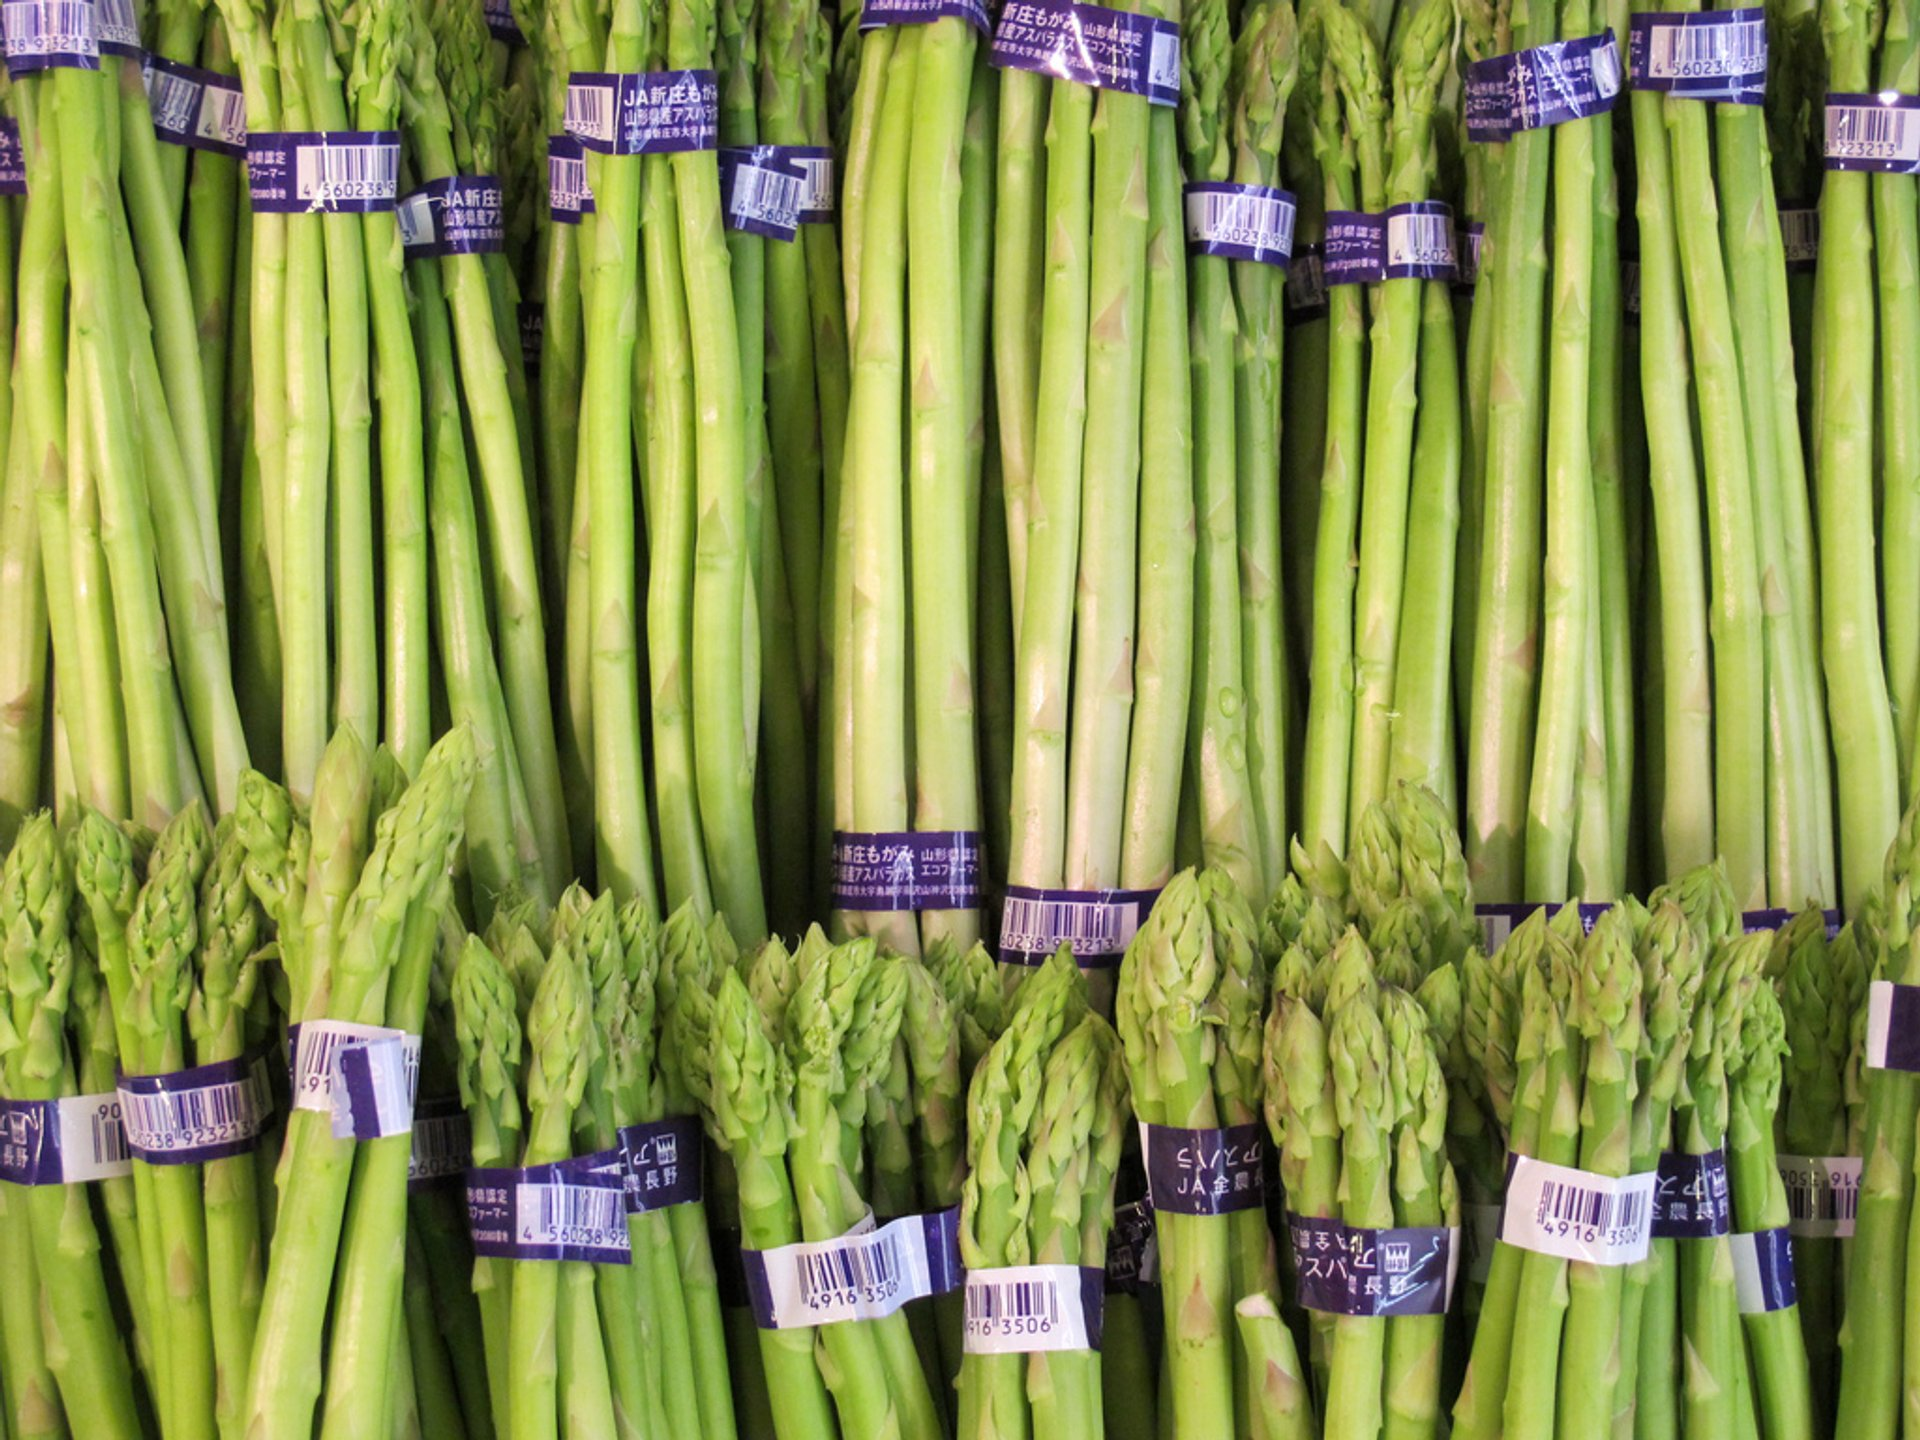 Asparagus in Japan 2020 - Best Time